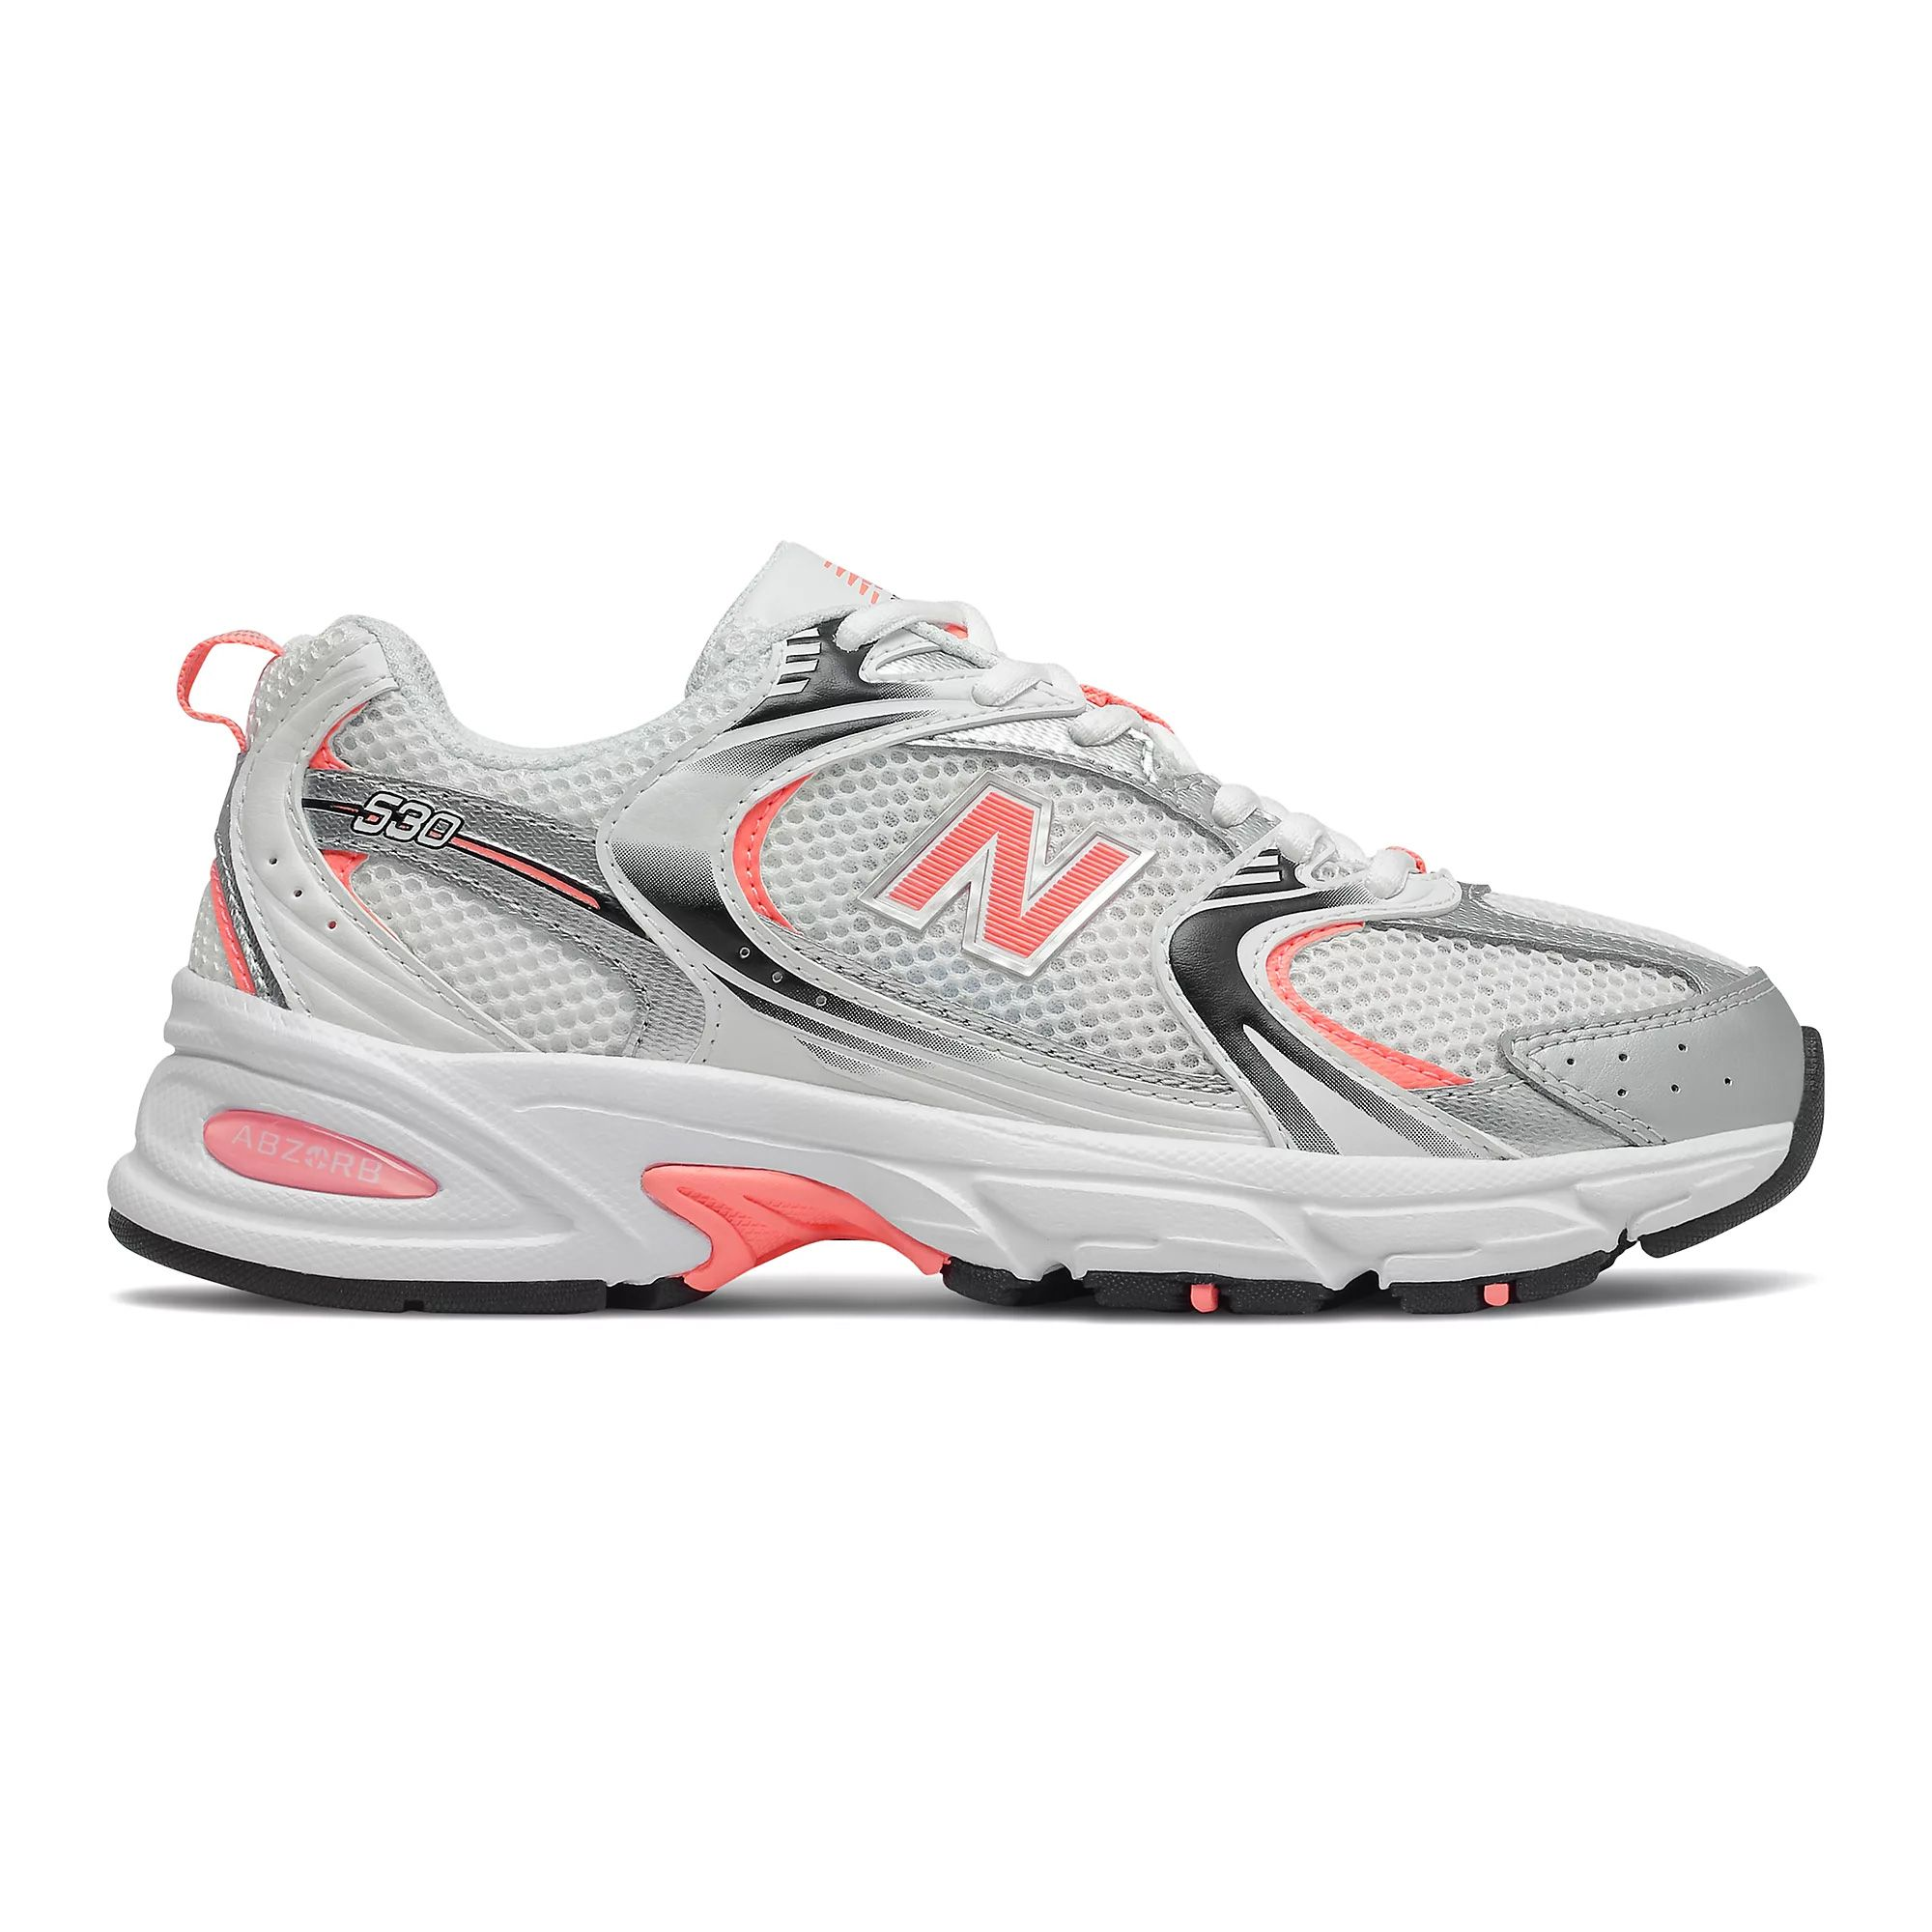 New Balance Men's 530 in Munsell White/Paradise Pink/Classic Silver